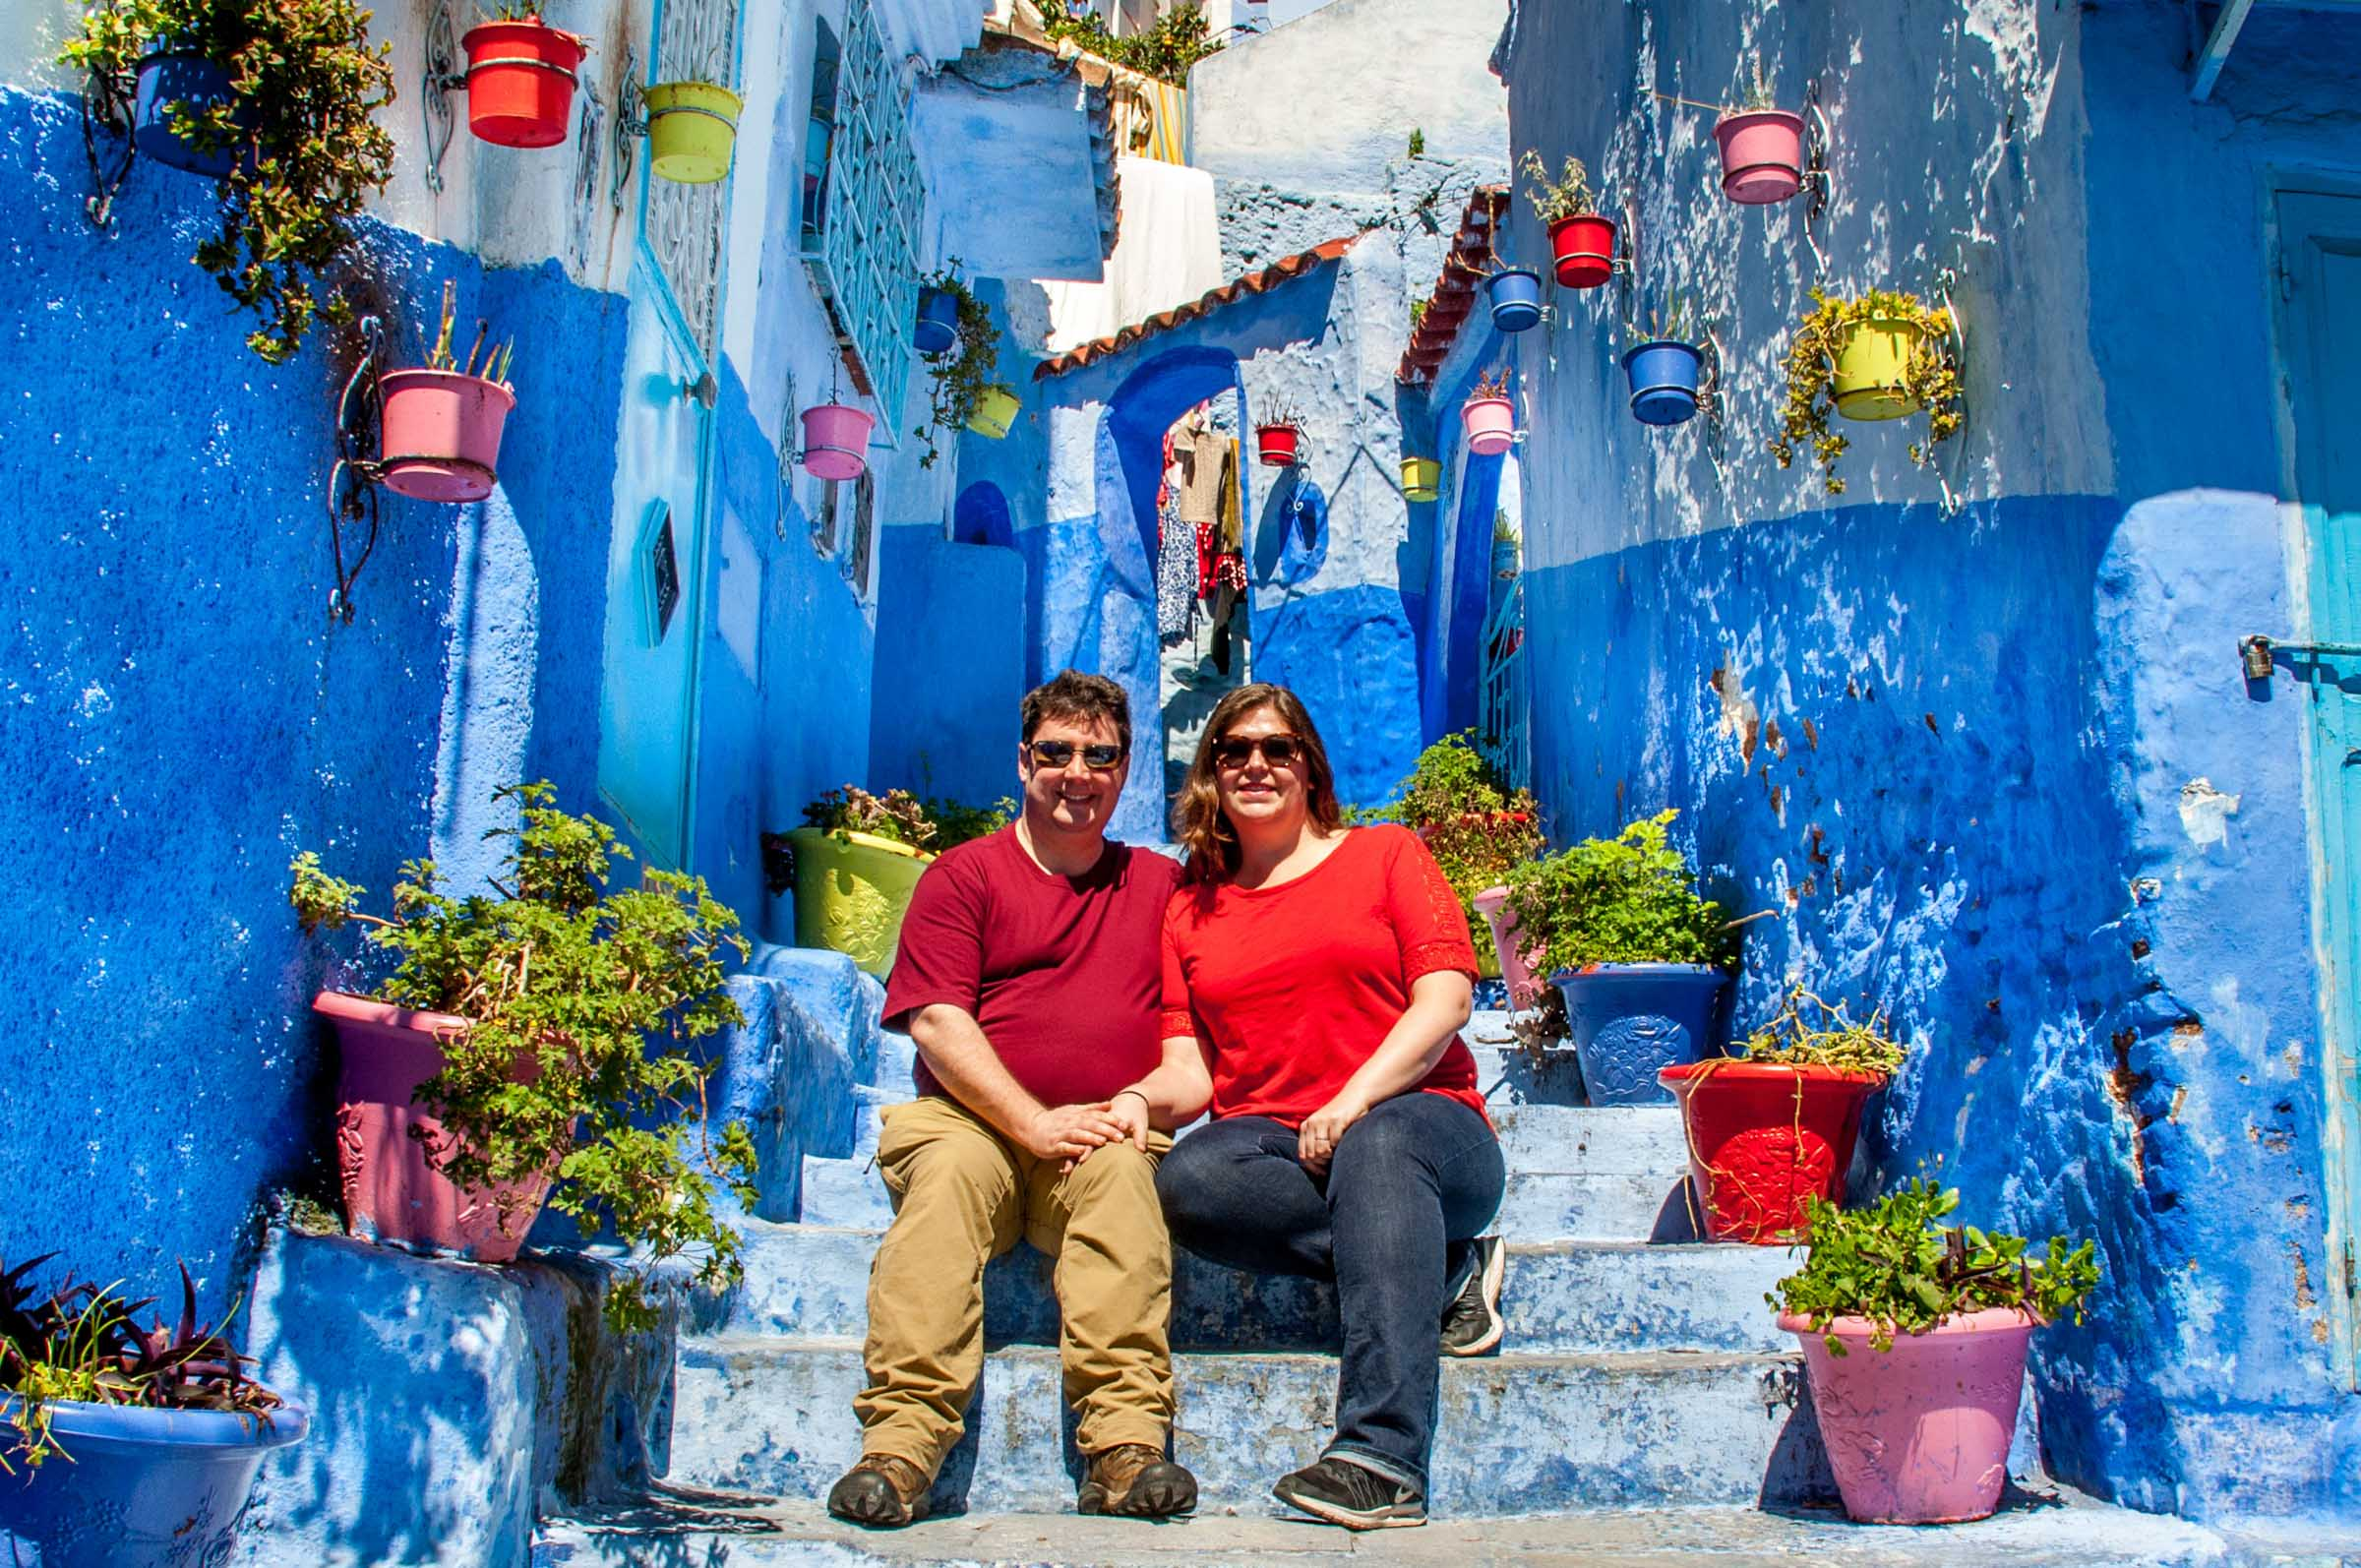 Lance and Laura, the Travel Addicts, in Chefchaouen, Morocco